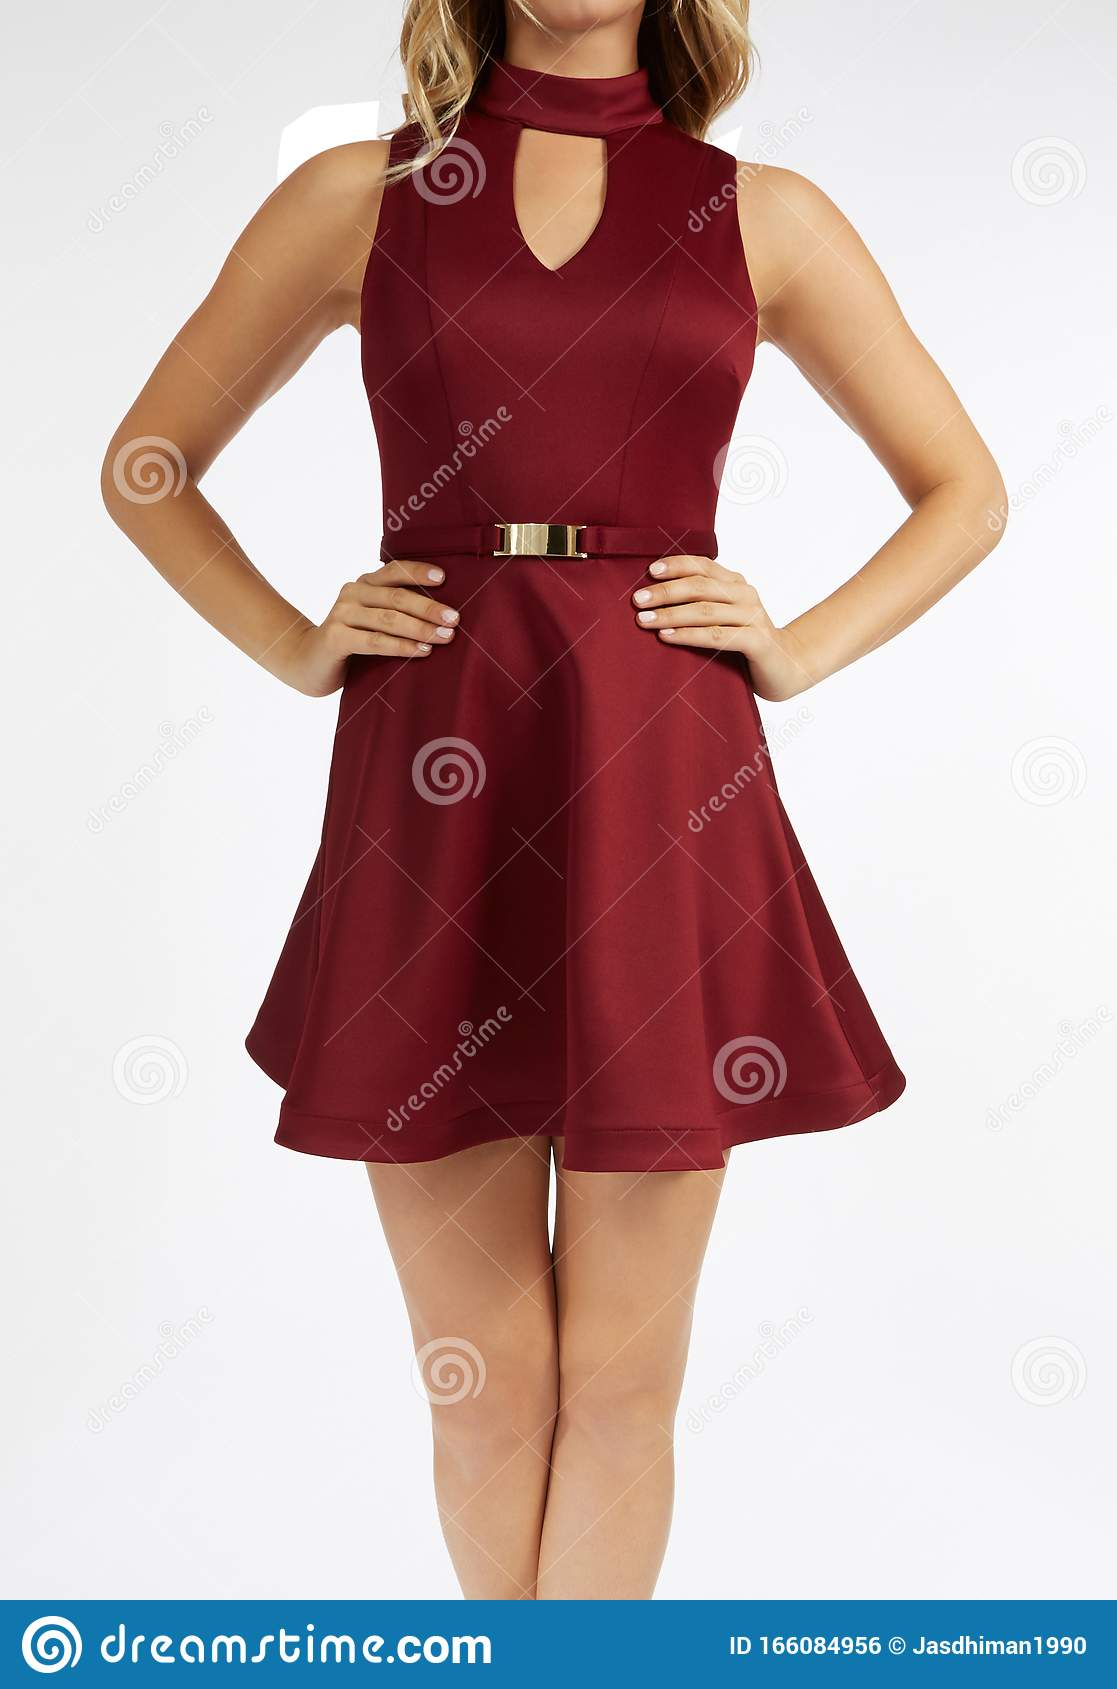 Elegant Red One Piece Sleeveless Dress With Flared Bottom With White Background Latest Design Short Frocks For Girl San Stock Photo Image Of Length Brunette 166084956